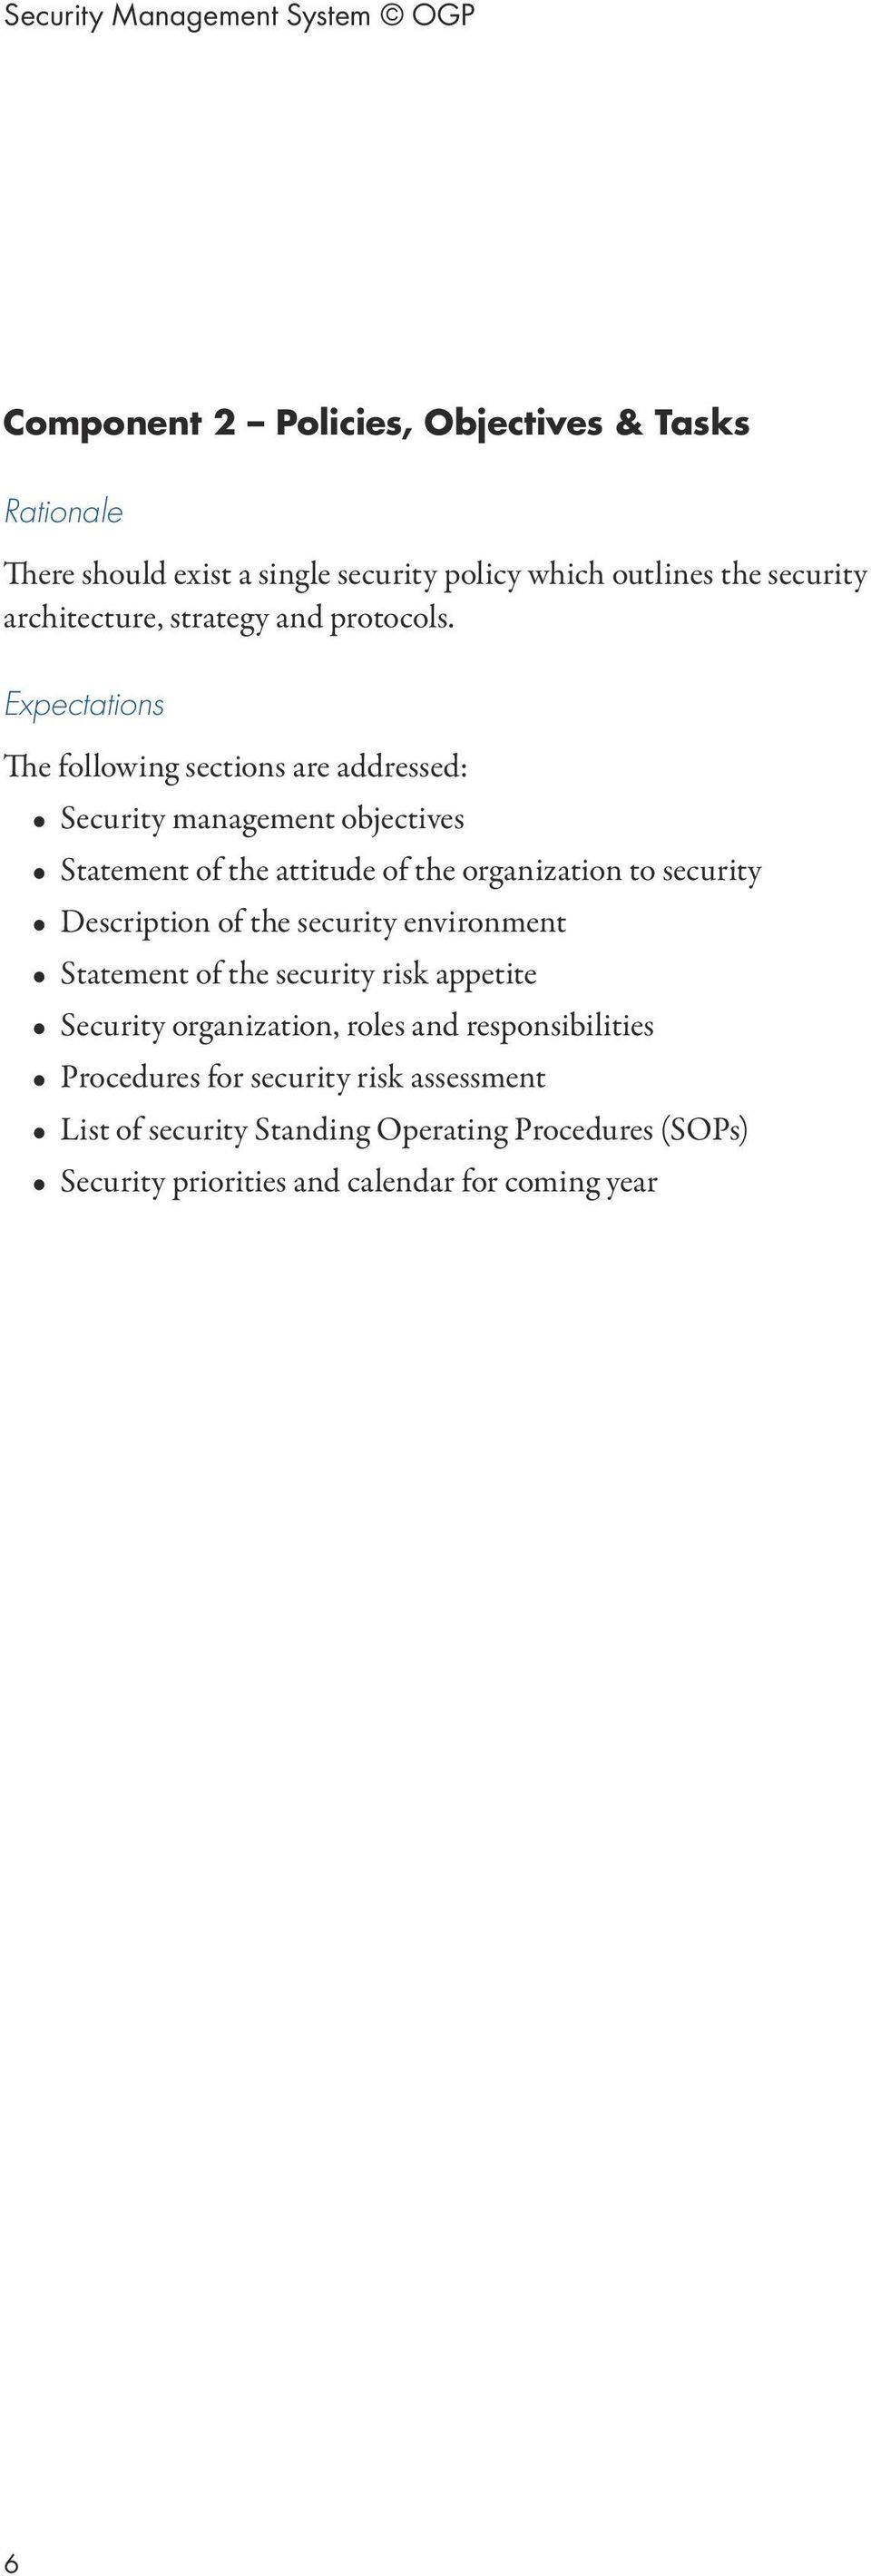 Expectations The following sections are addressed: Security management objectives Statement of the attitude of the organization to security